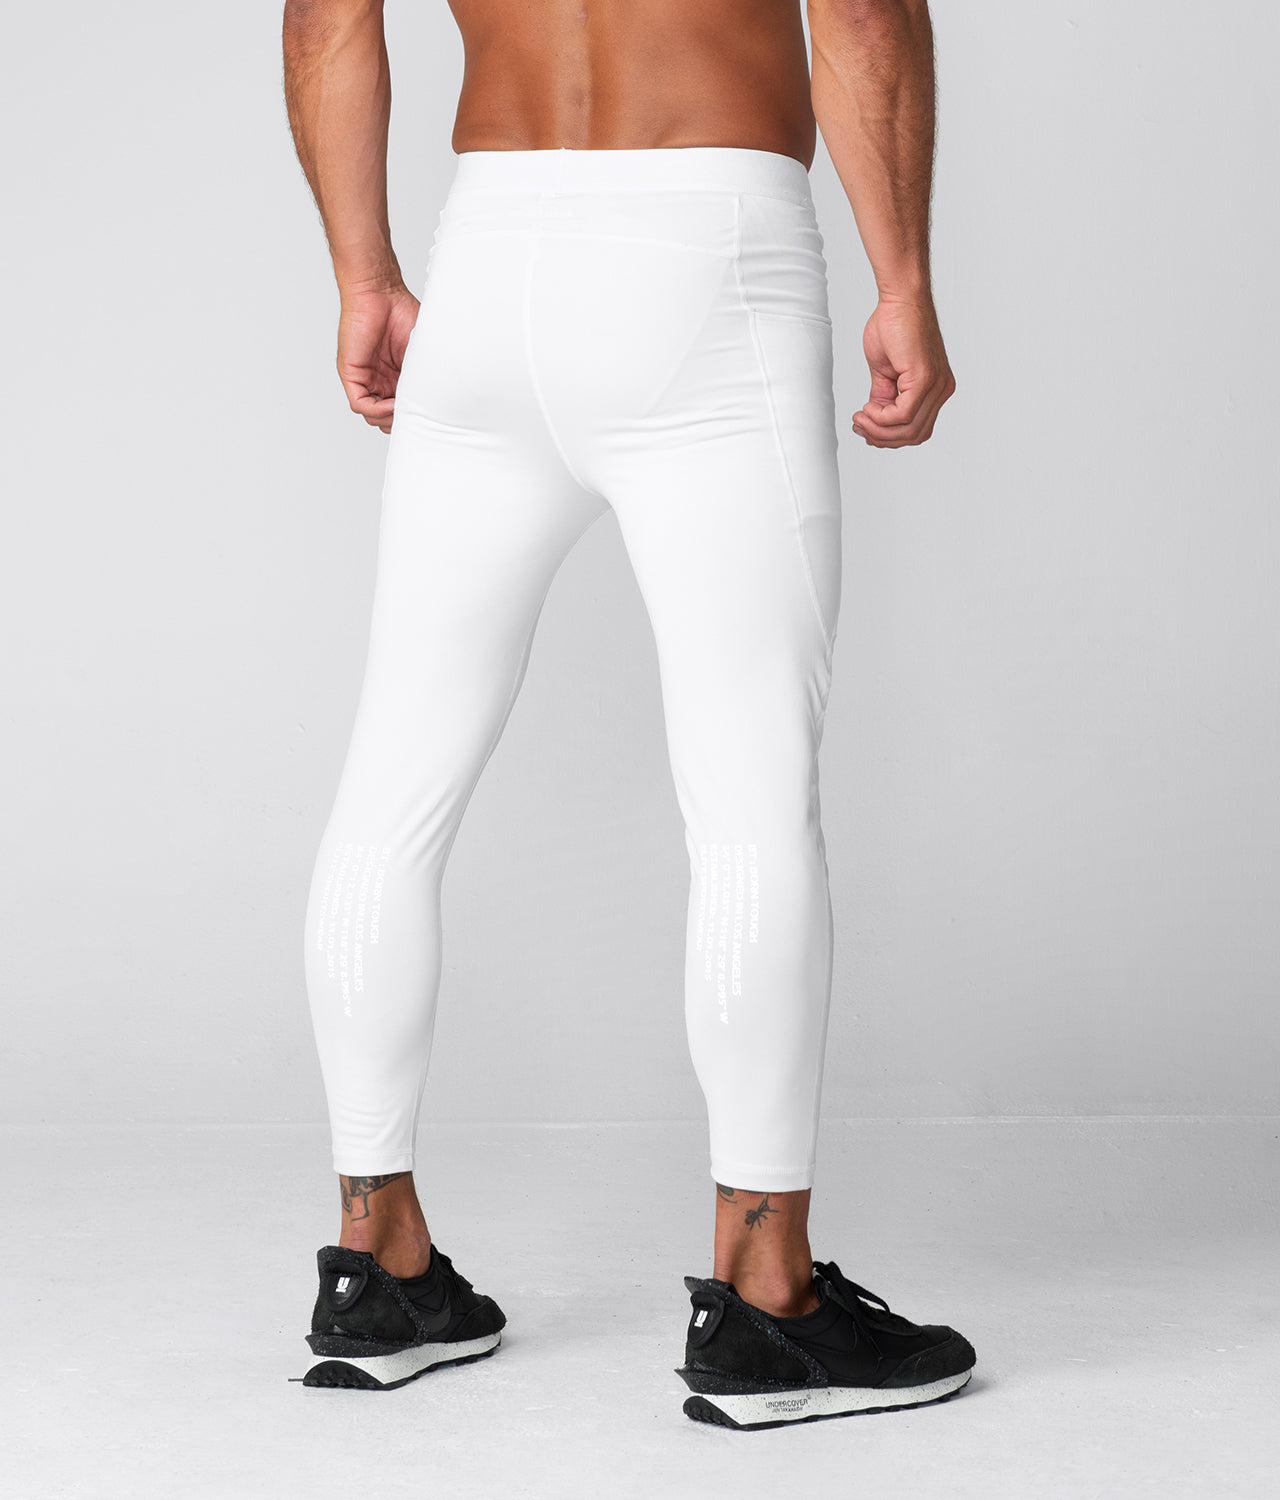 Born Tough Side Pockets Compression Pants For Men White